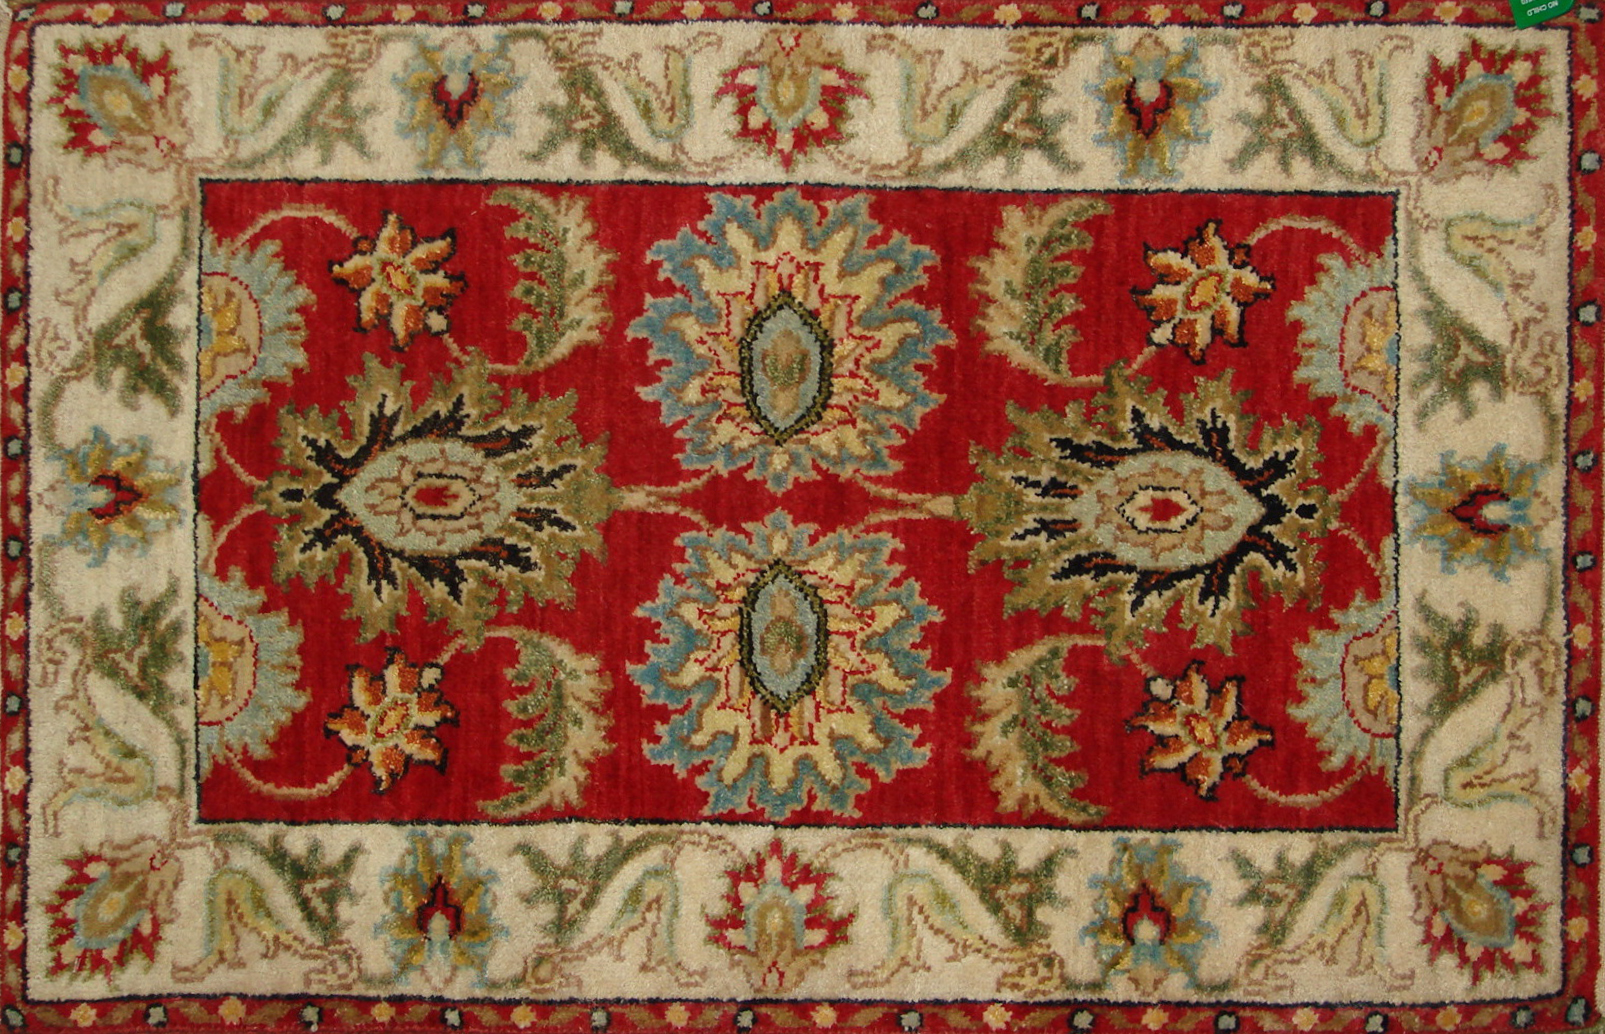 2X3 Traditional Hand Knotted Wool Area Rug - MR20747